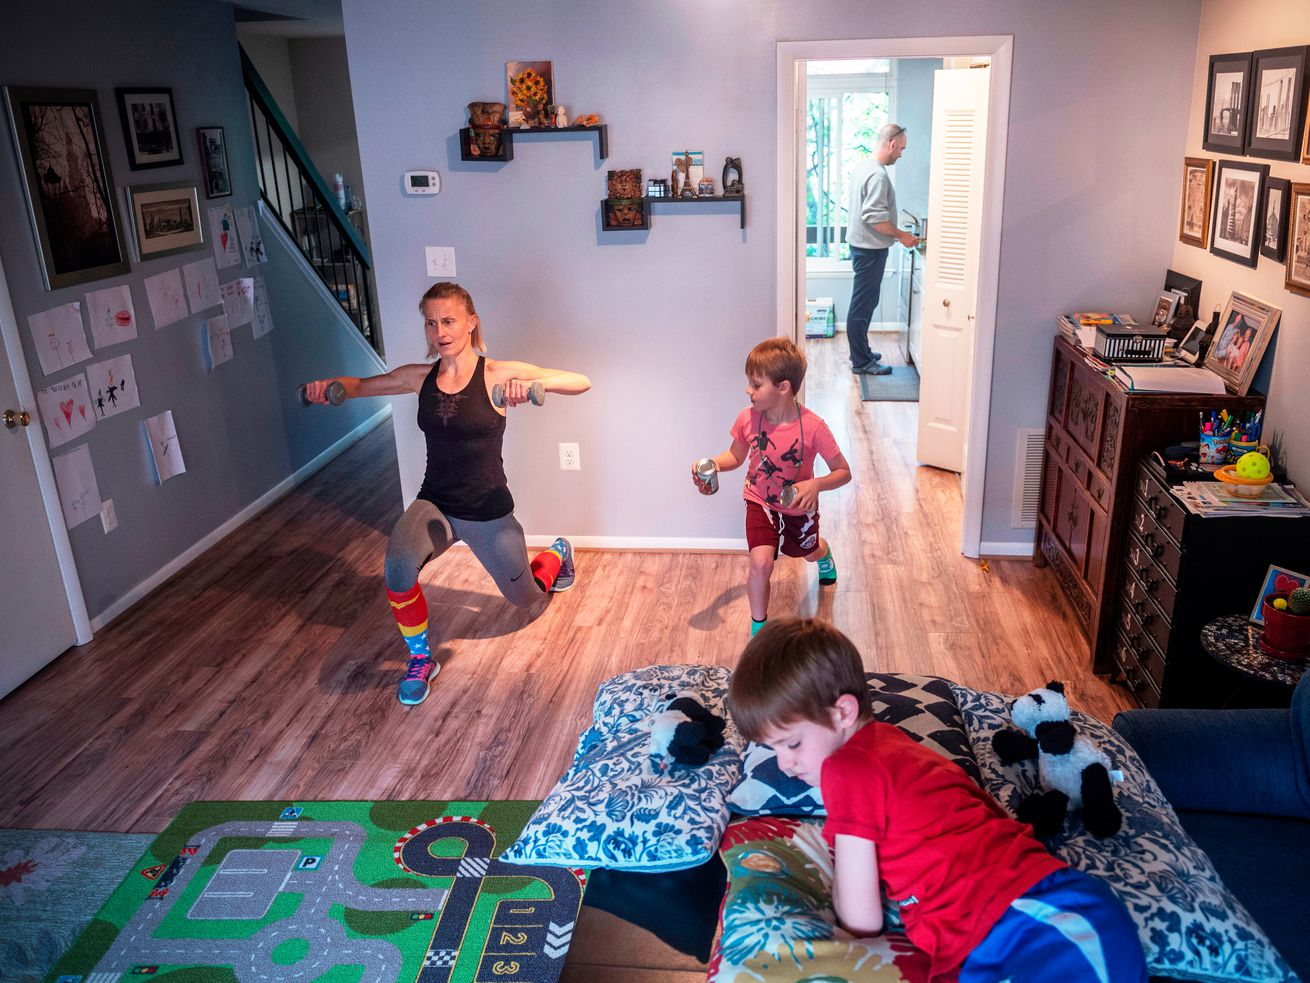 A woman in a yoga pose in her home with her two children and partner visible in the frame.